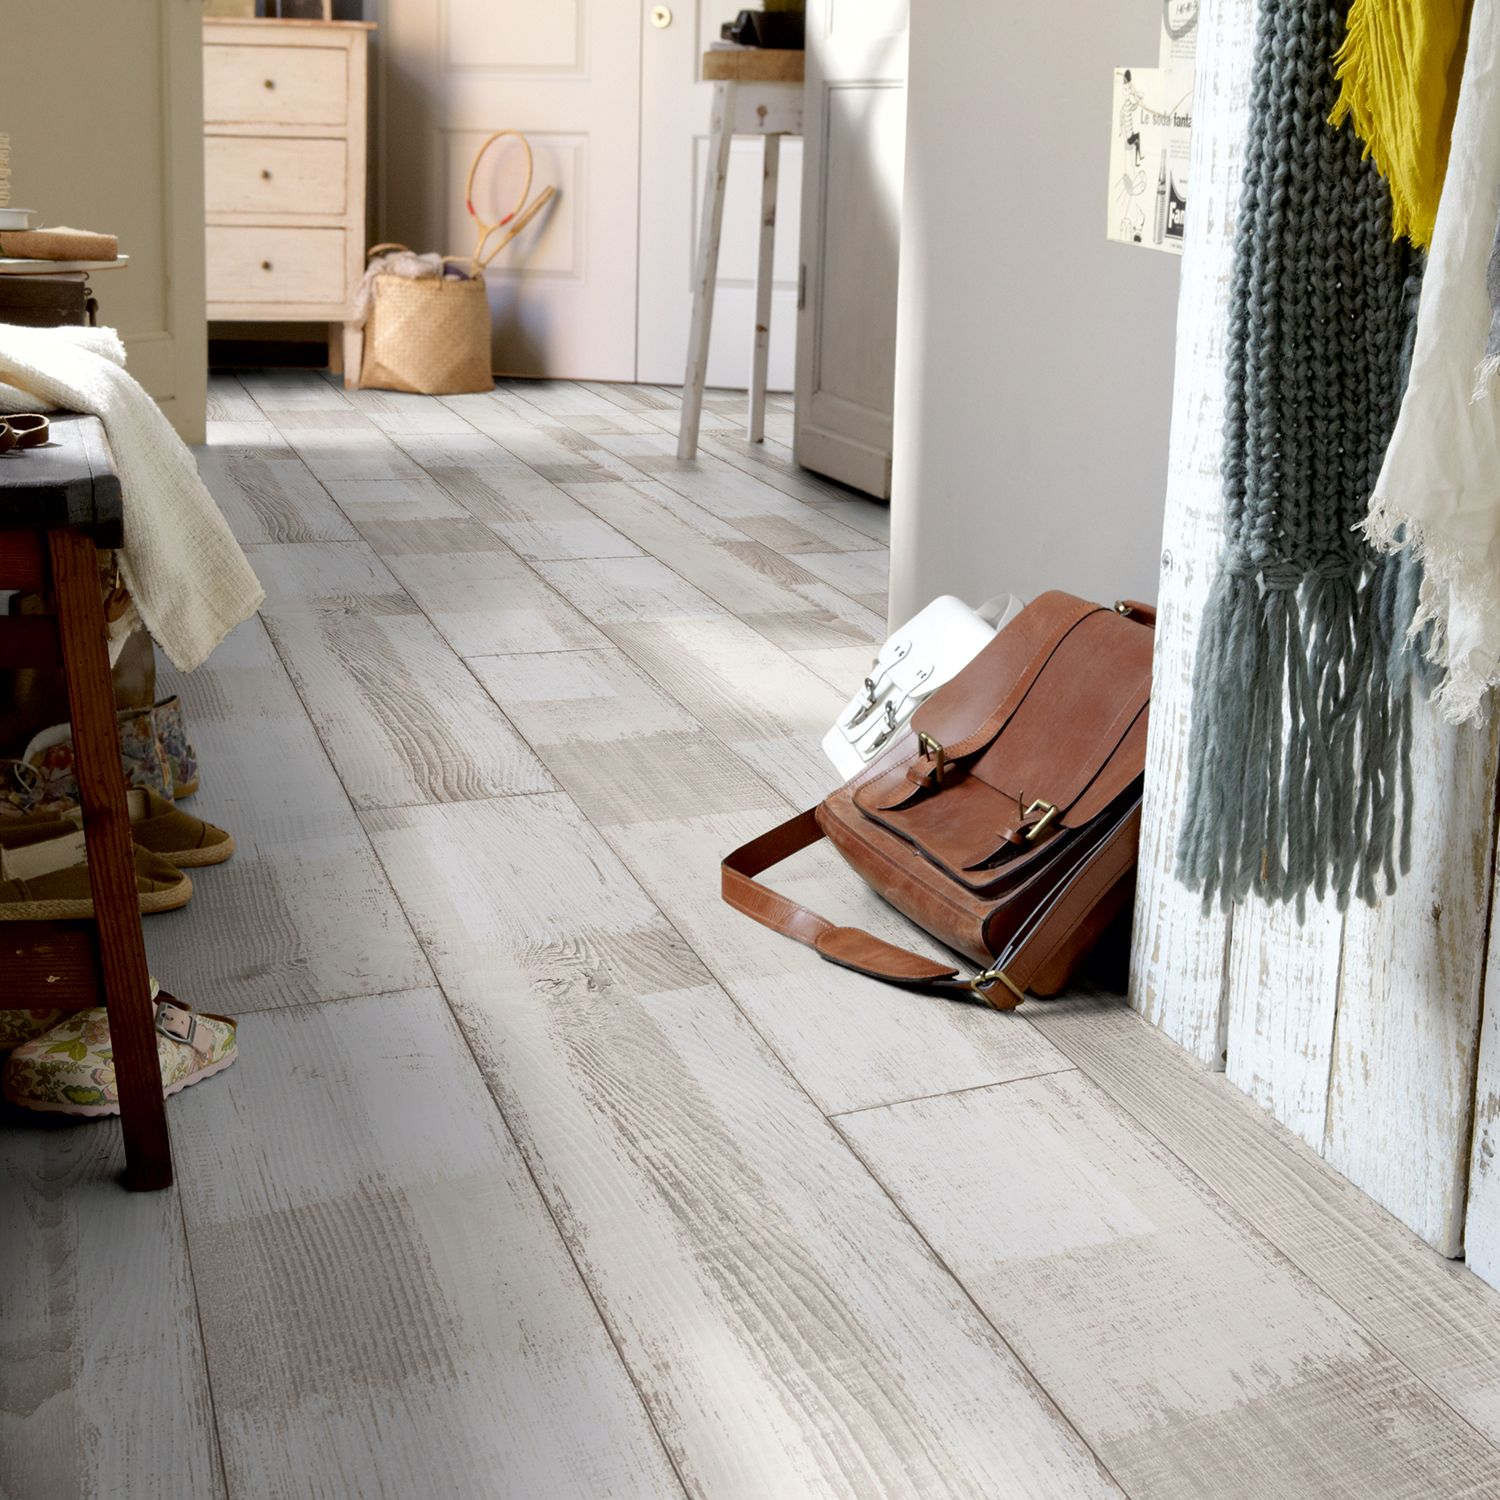 Rhino style patched white wood effect vinyl flooring ideas for rhino style patched white wood effect vinyl flooring dailygadgetfo Image collections